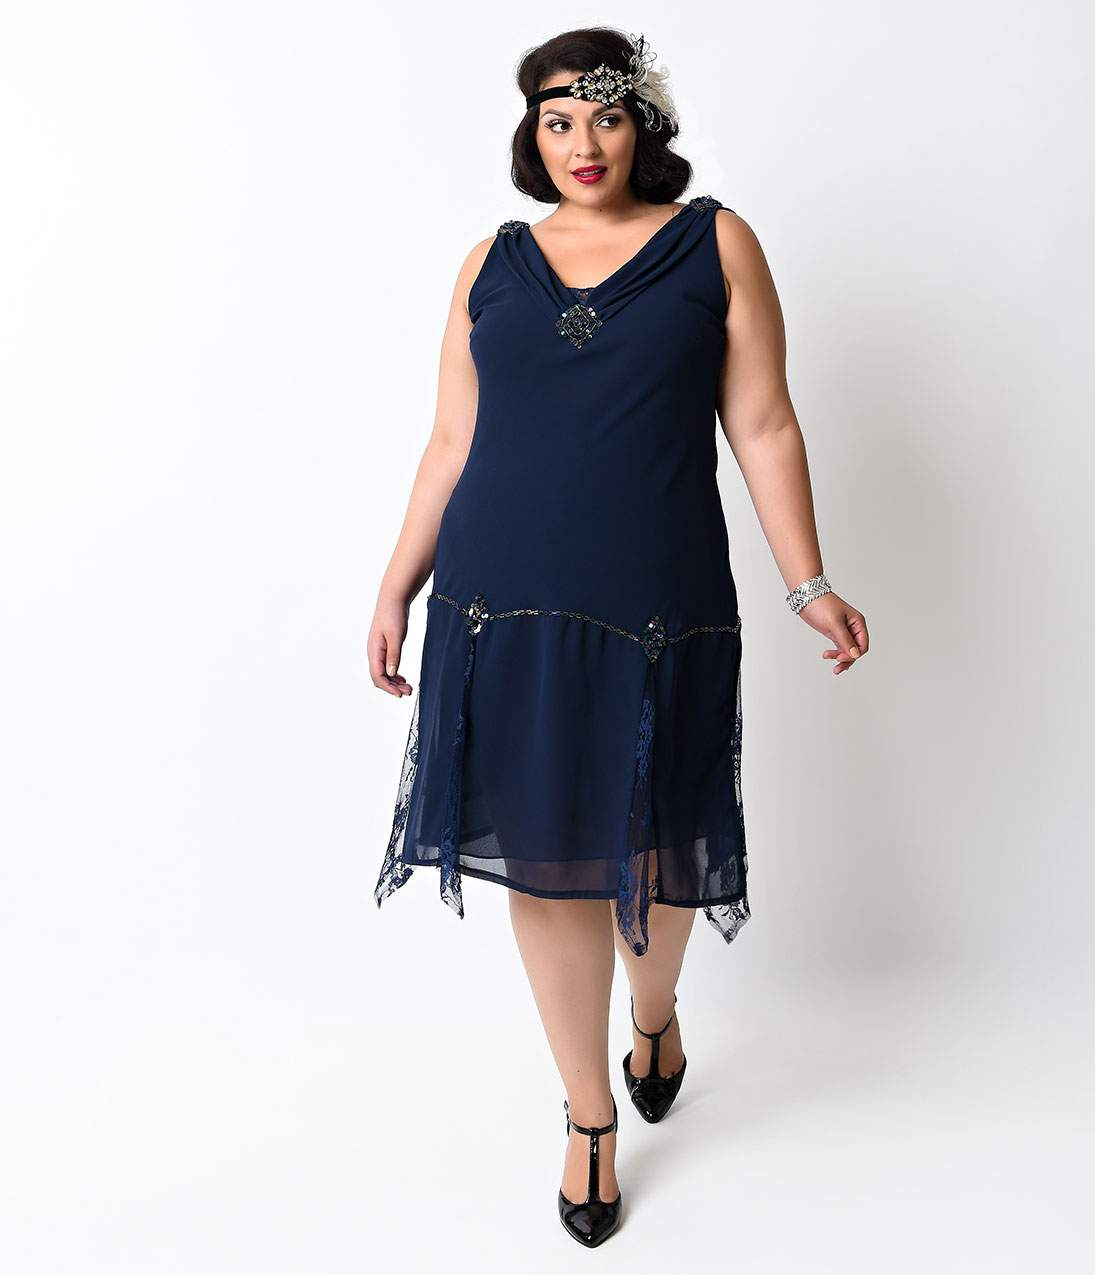 1920s Evening Dresses & Formal Gowns Unique Vintage Plus Size Navy Hemingway Flapper Dress $48.00 AT vintagedancer.com